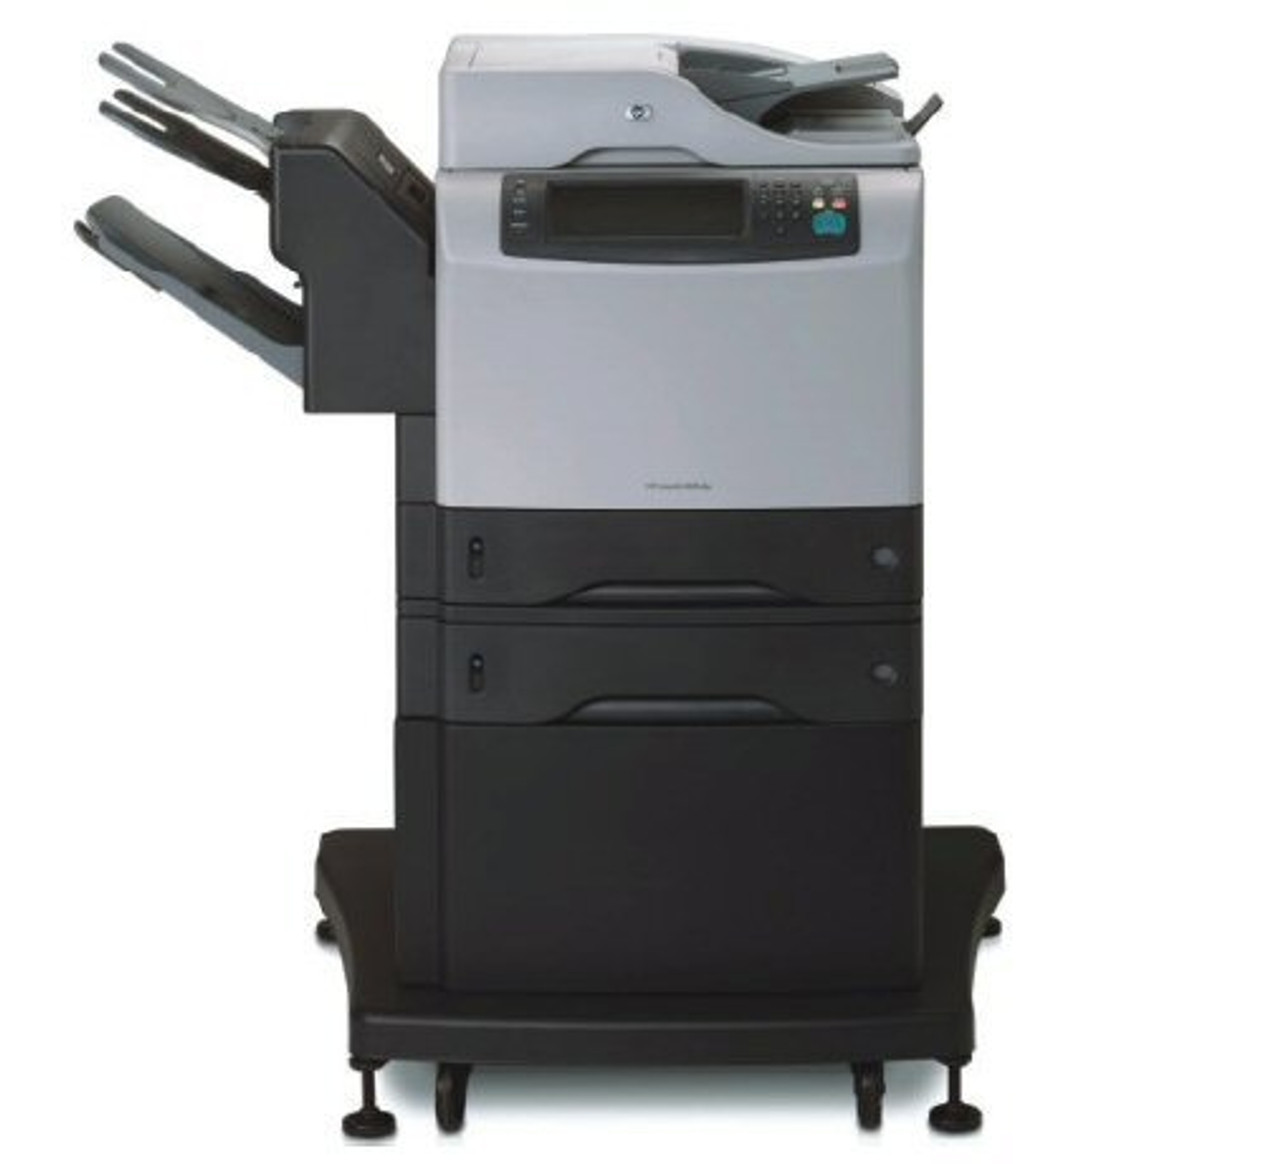 HP LaserJet M4345XM MFP - CB428A - HP Laser Printer for sale